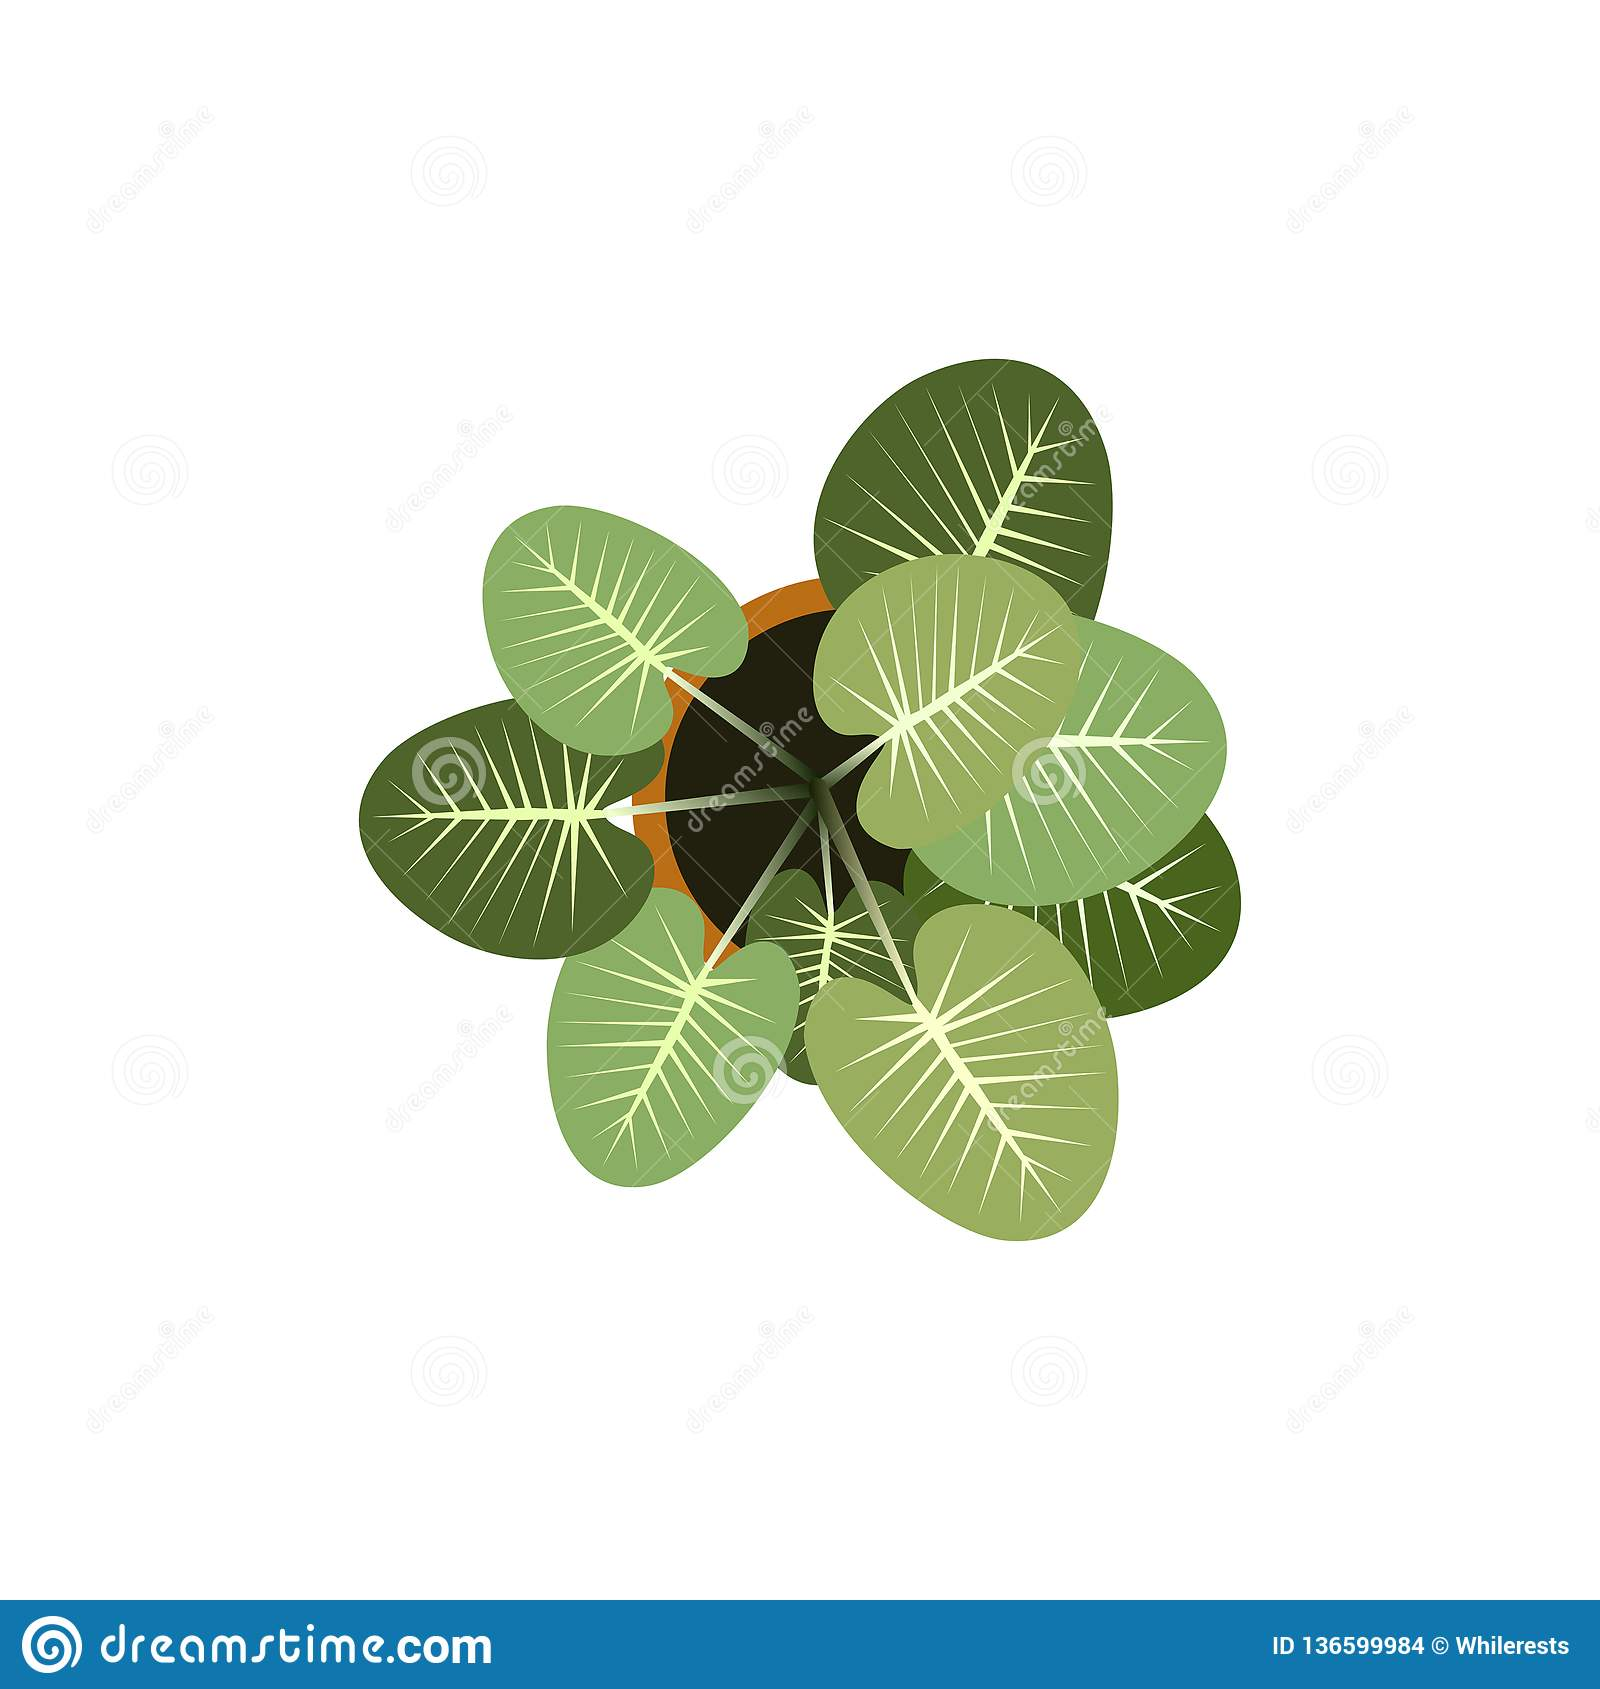 Top View Plants Easy Copy Paste In Your Landscape Design Projects Or Architecture Plan Isolated Flowers On White Stock Vector Illustration Of Landscape Isolated 136599984